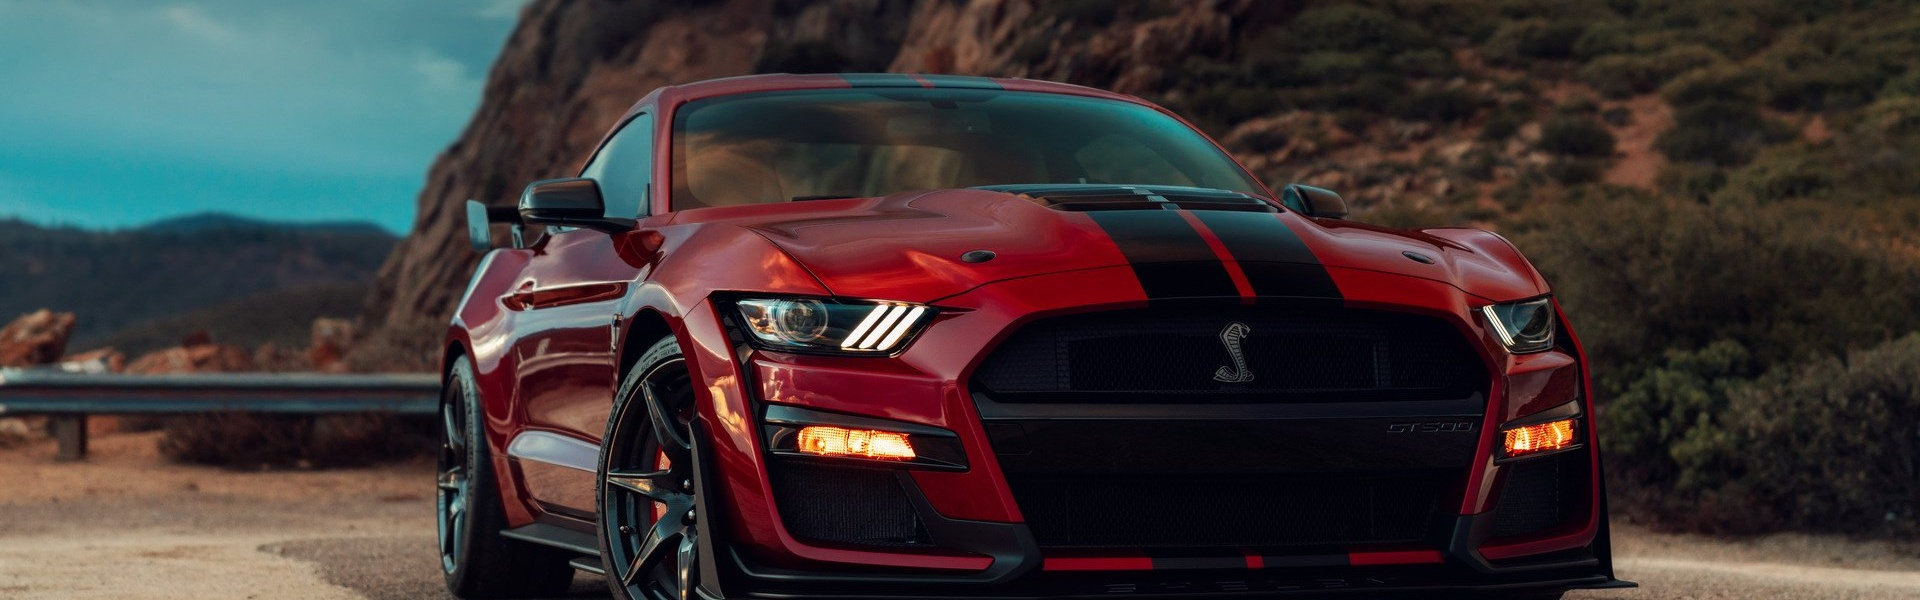 2020-ford-mustang-shelby-gt500-53.jpg